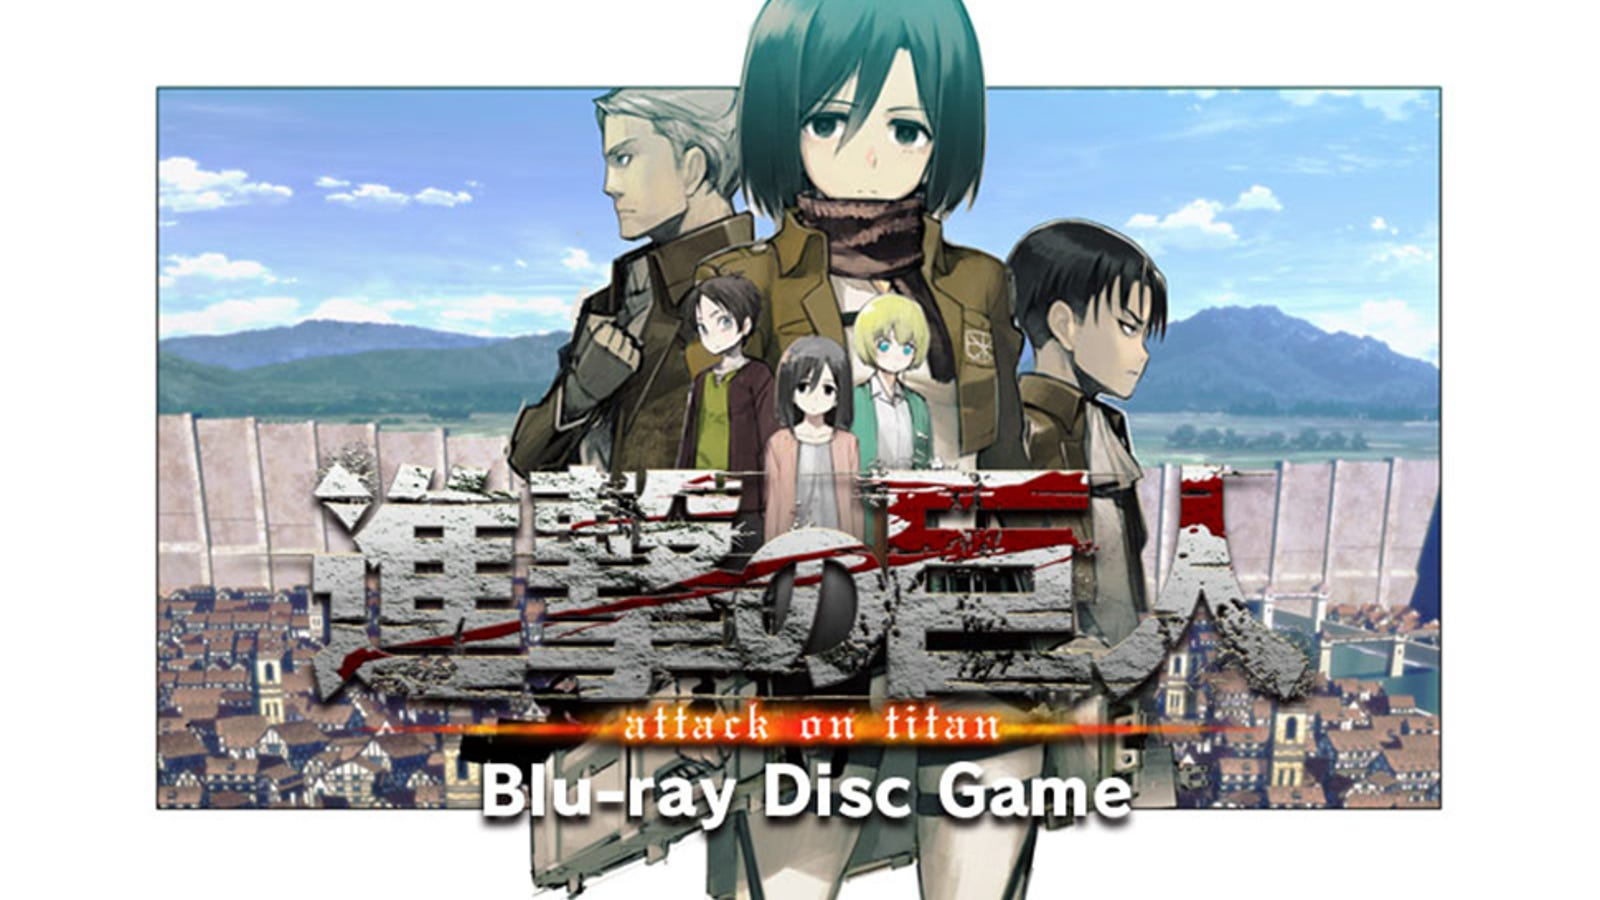 Attack on titan has finished but the games are just beginning